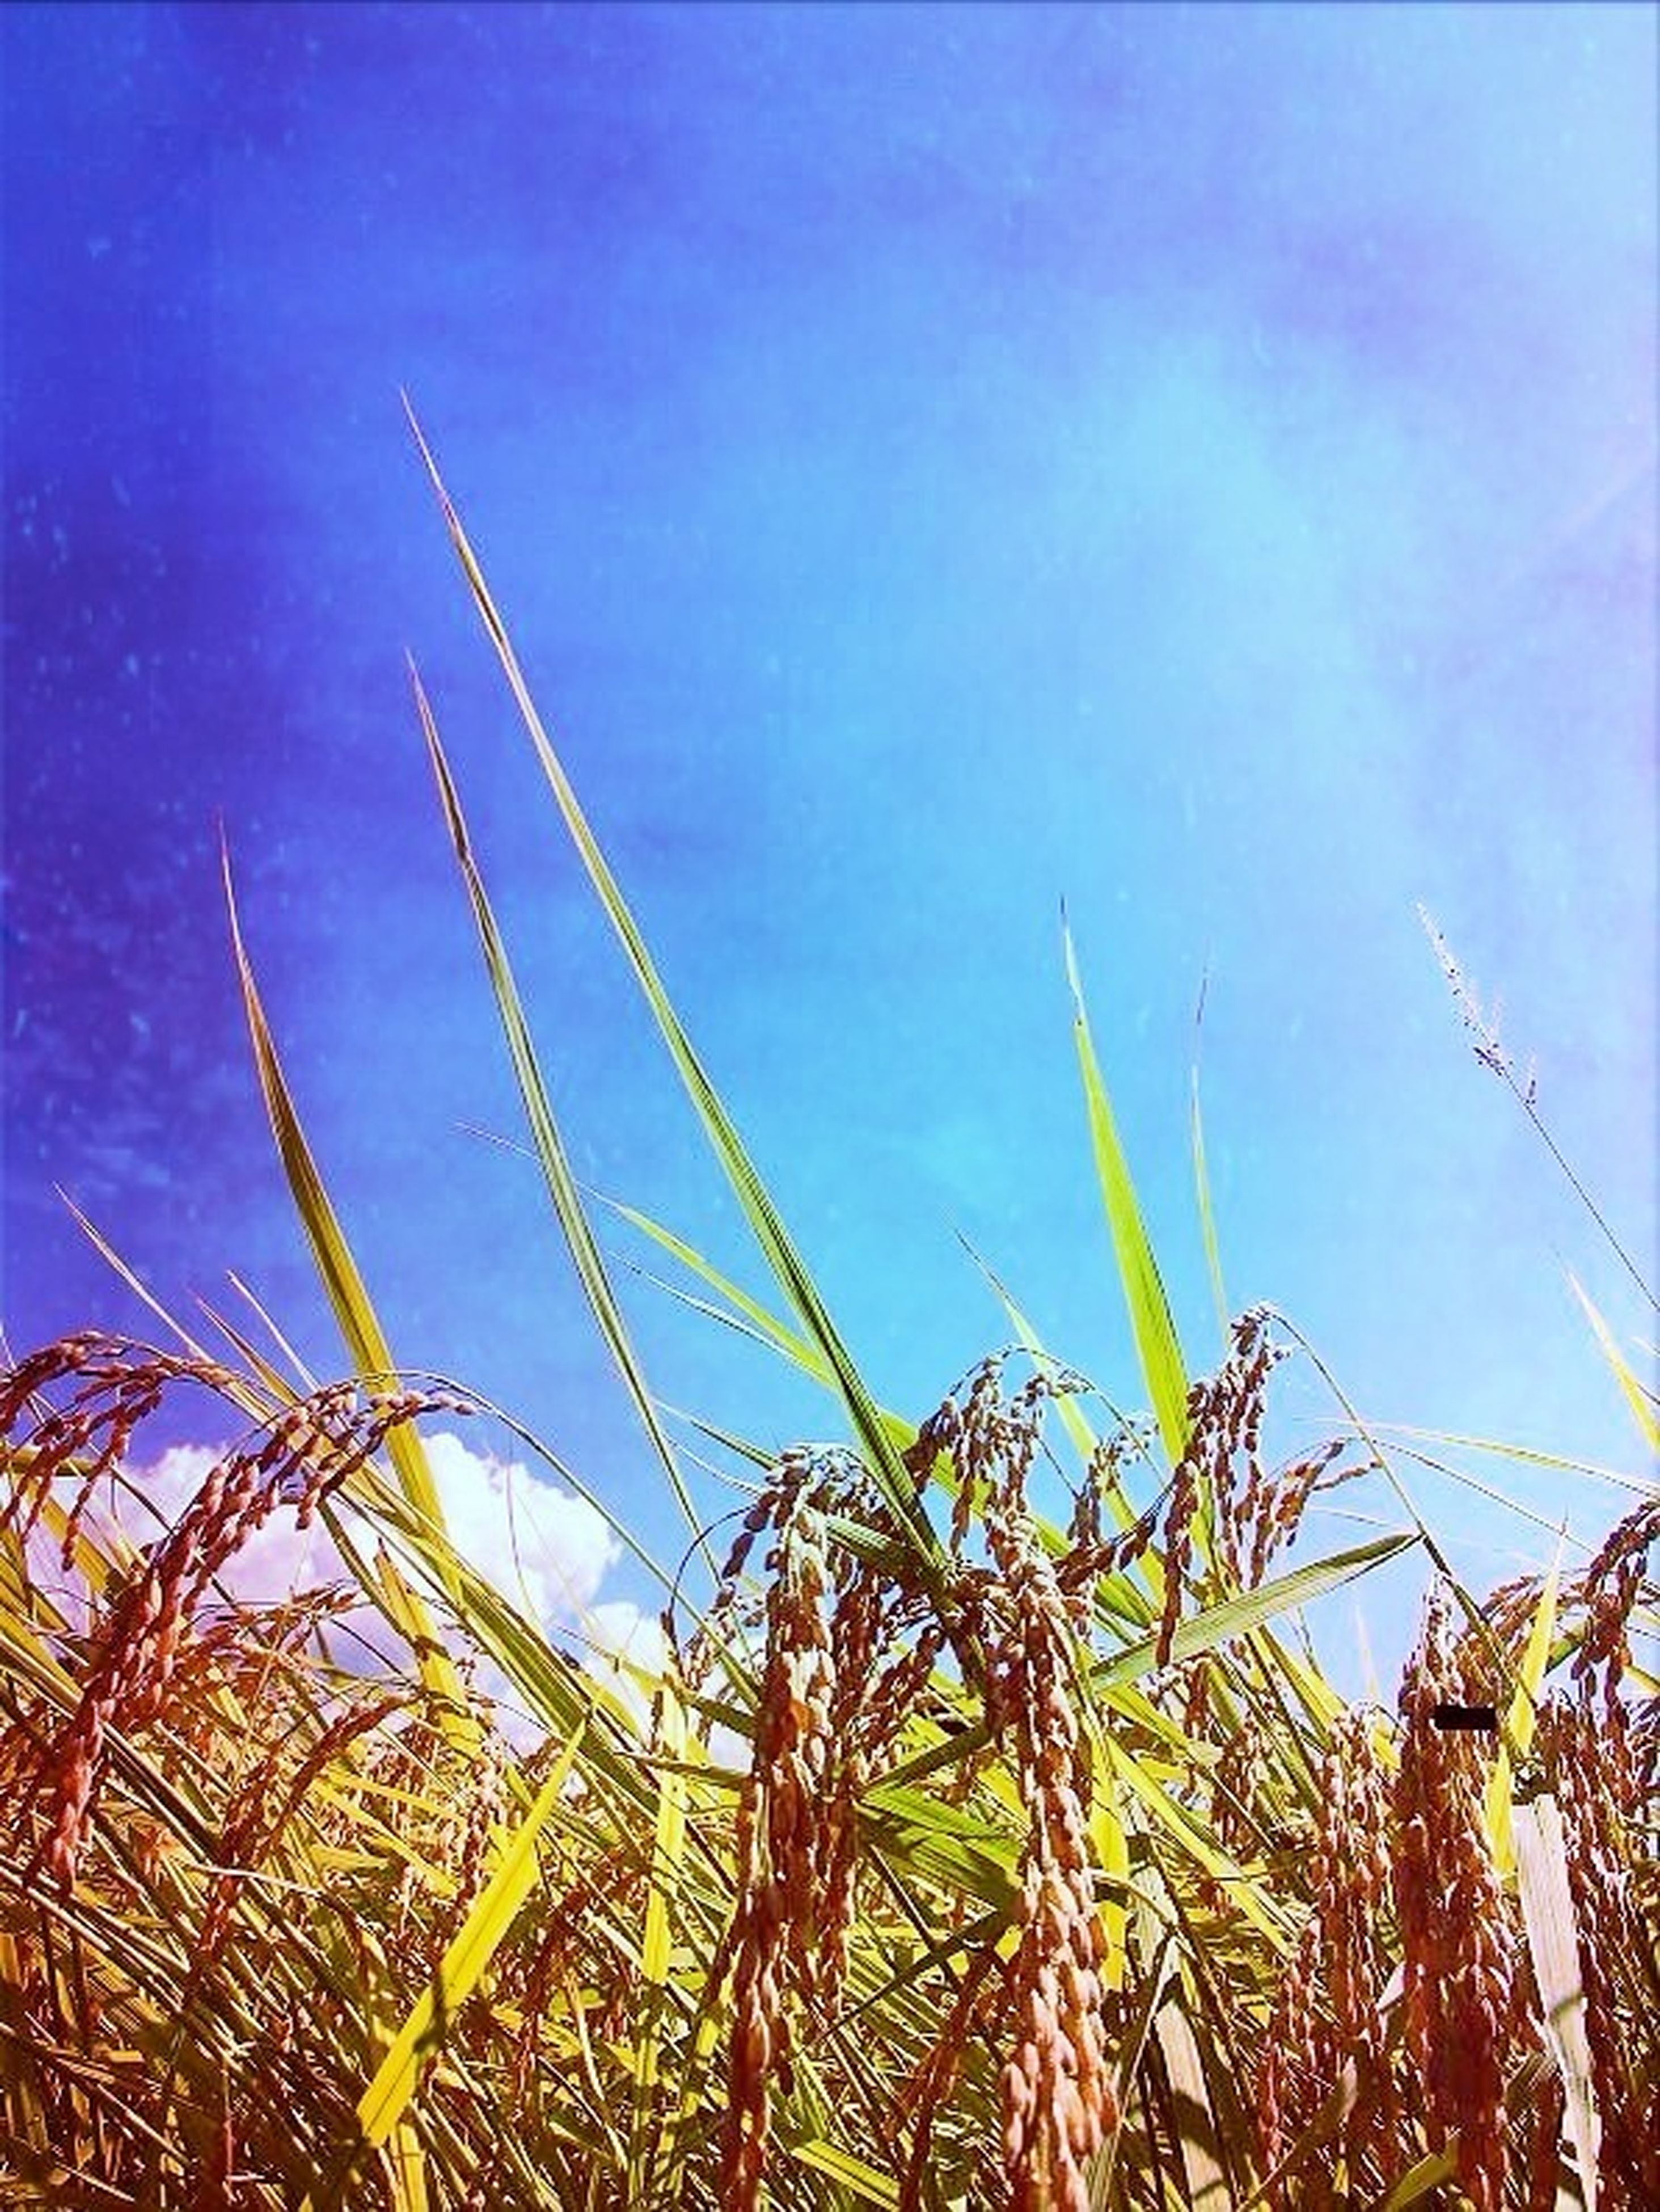 plant, growth, nature, field, beauty in nature, blue, sky, grass, tranquility, agriculture, rural scene, close-up, scenics, crop, no people, tranquil scene, outdoors, cereal plant, growing, stem